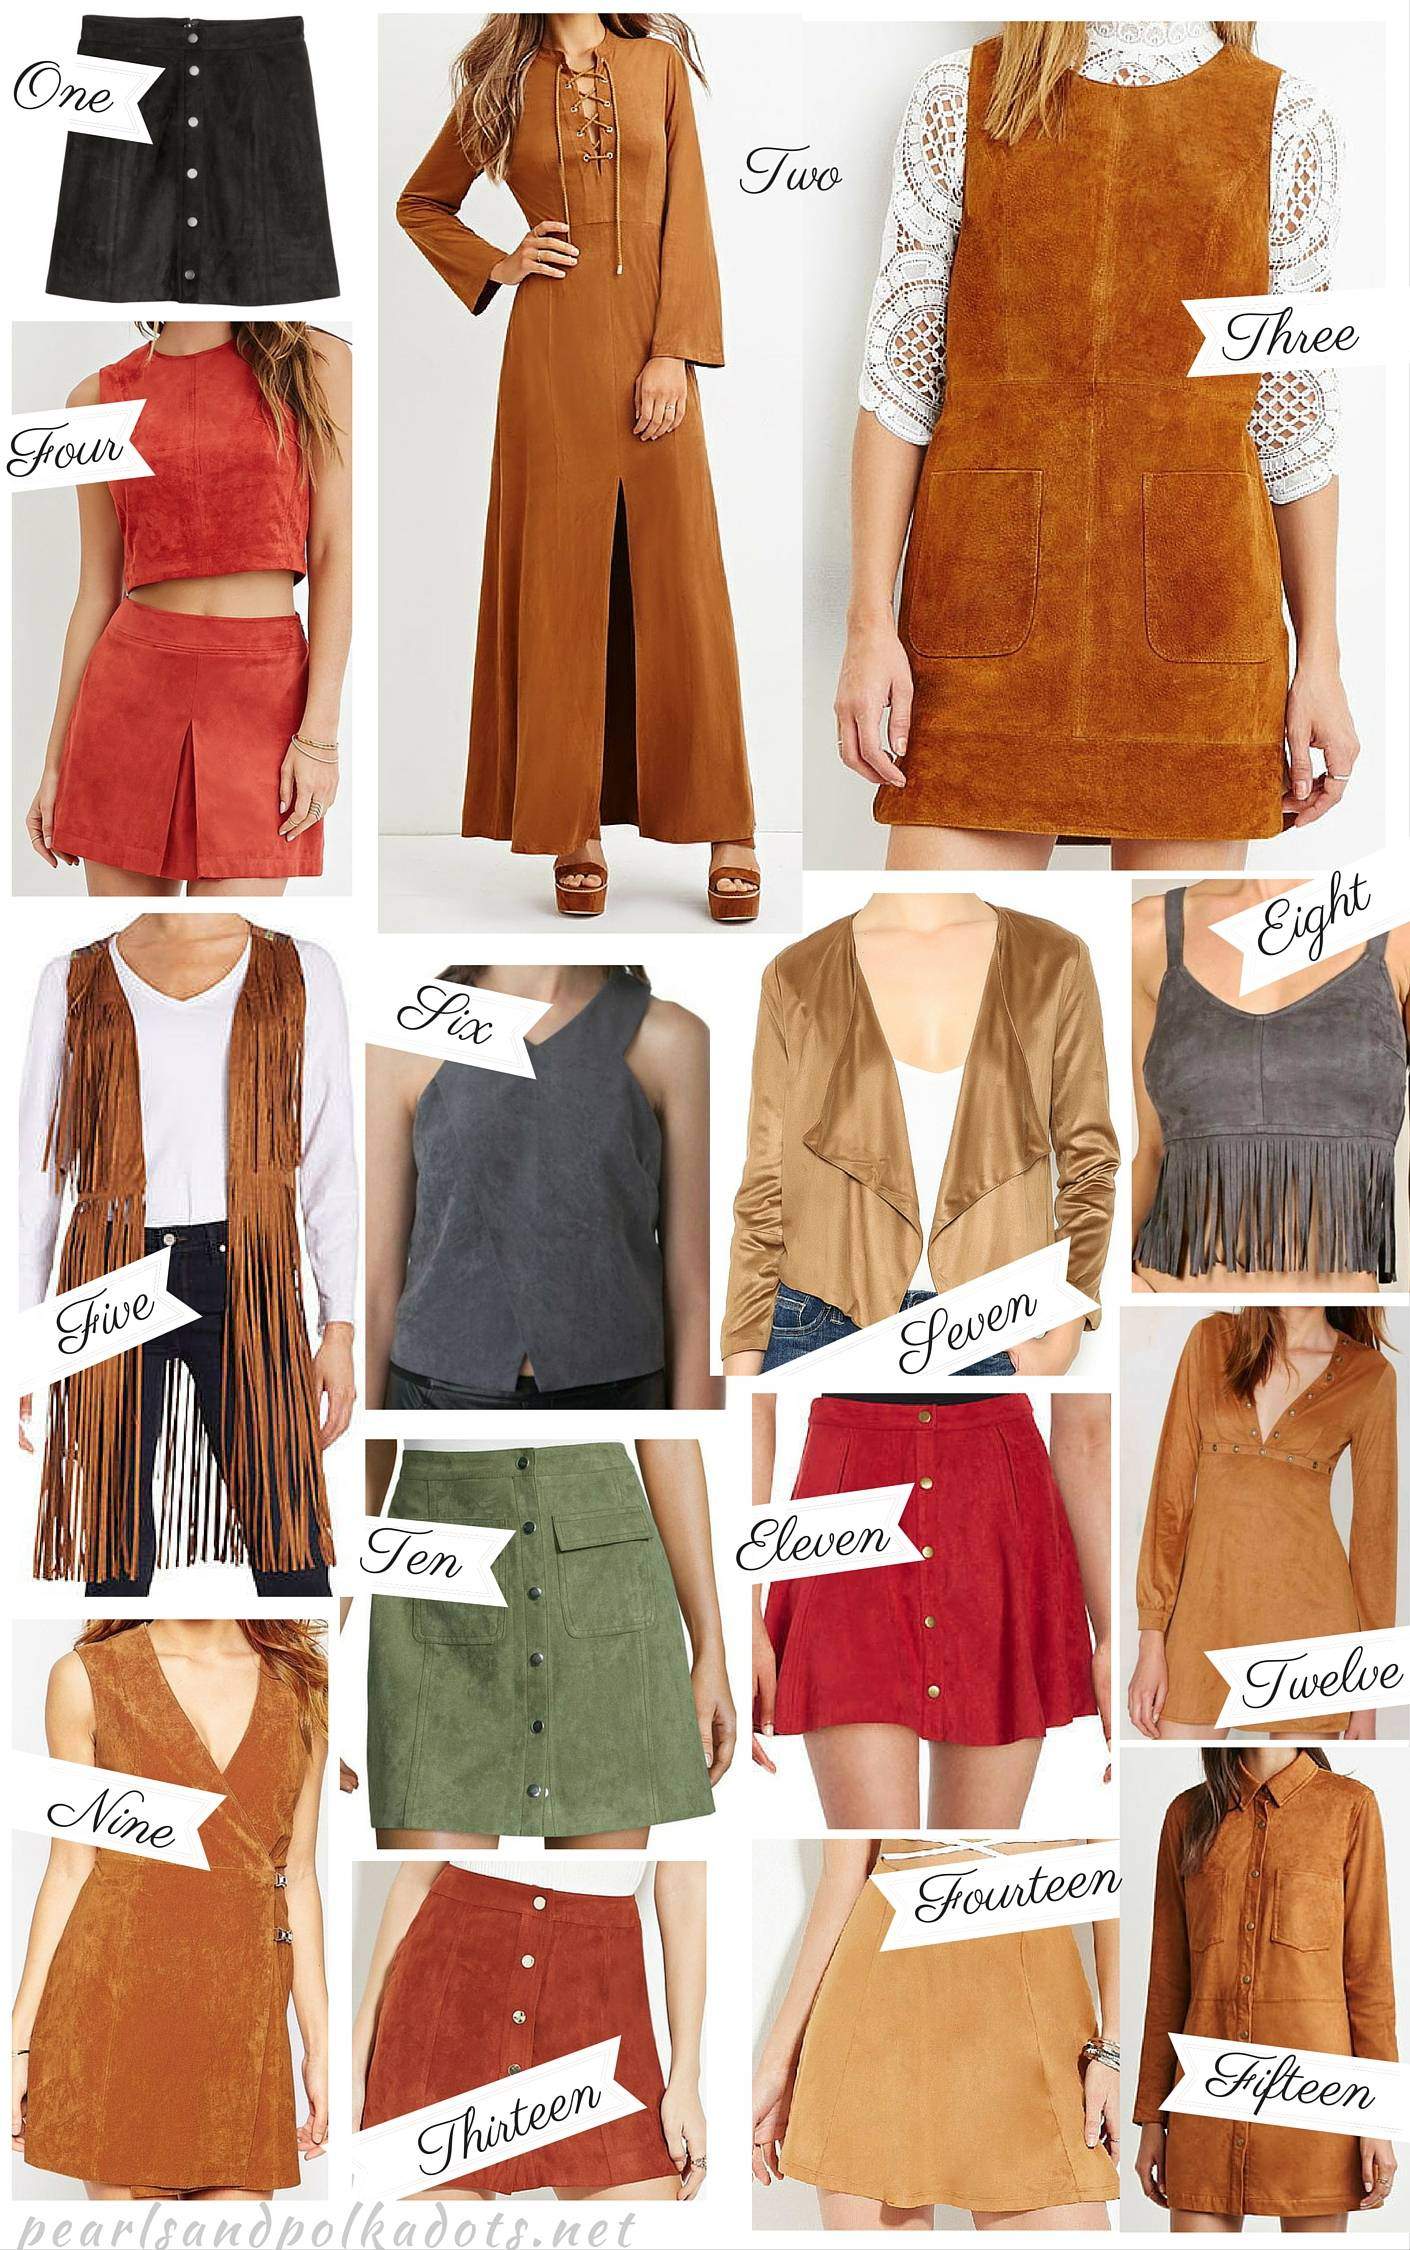 15 Trendy Suede Items Under $50 - Pearls and Polkadots